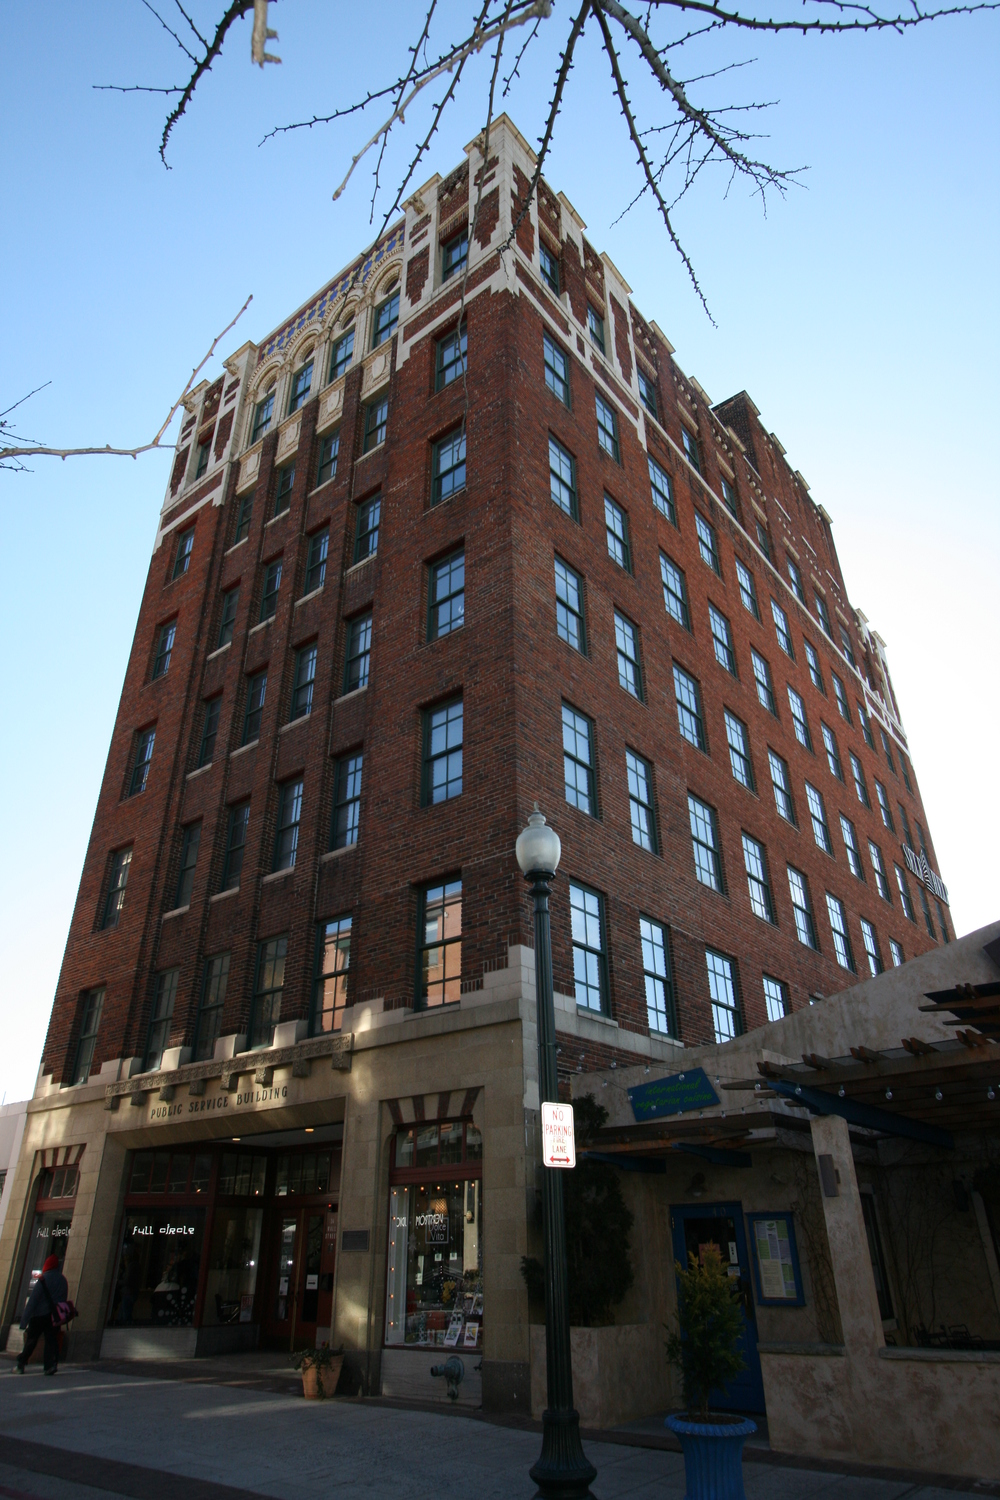 The Self-Help Building - Asheville, NC - Built in 1929 - 8 Stories - Renaissance Revival Style - Commercial Office Use